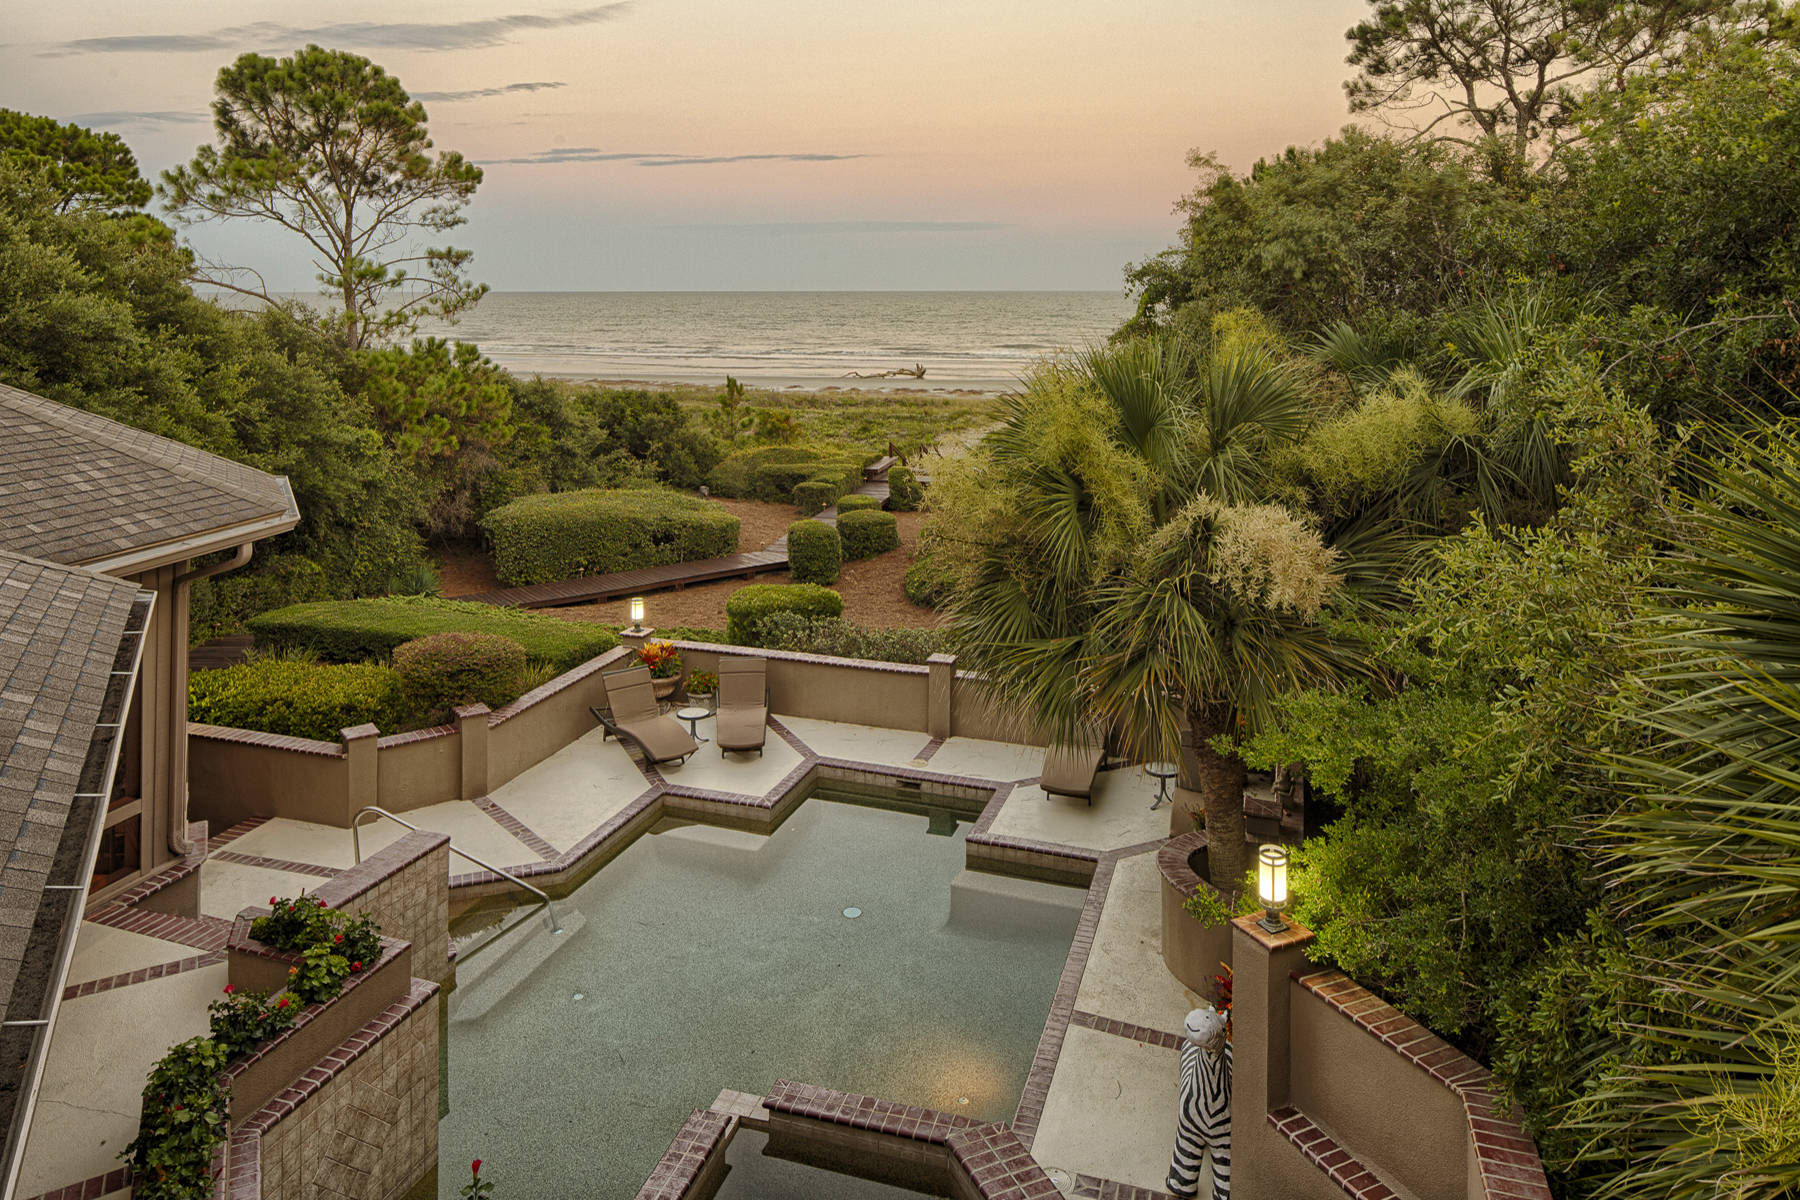 Single Family Home for Sale at 22 Duck Hawk Road 22 Duck Hawk Road Hilton Head, South Carolina 29928 United StatesIn/Around: Hilton Head Island